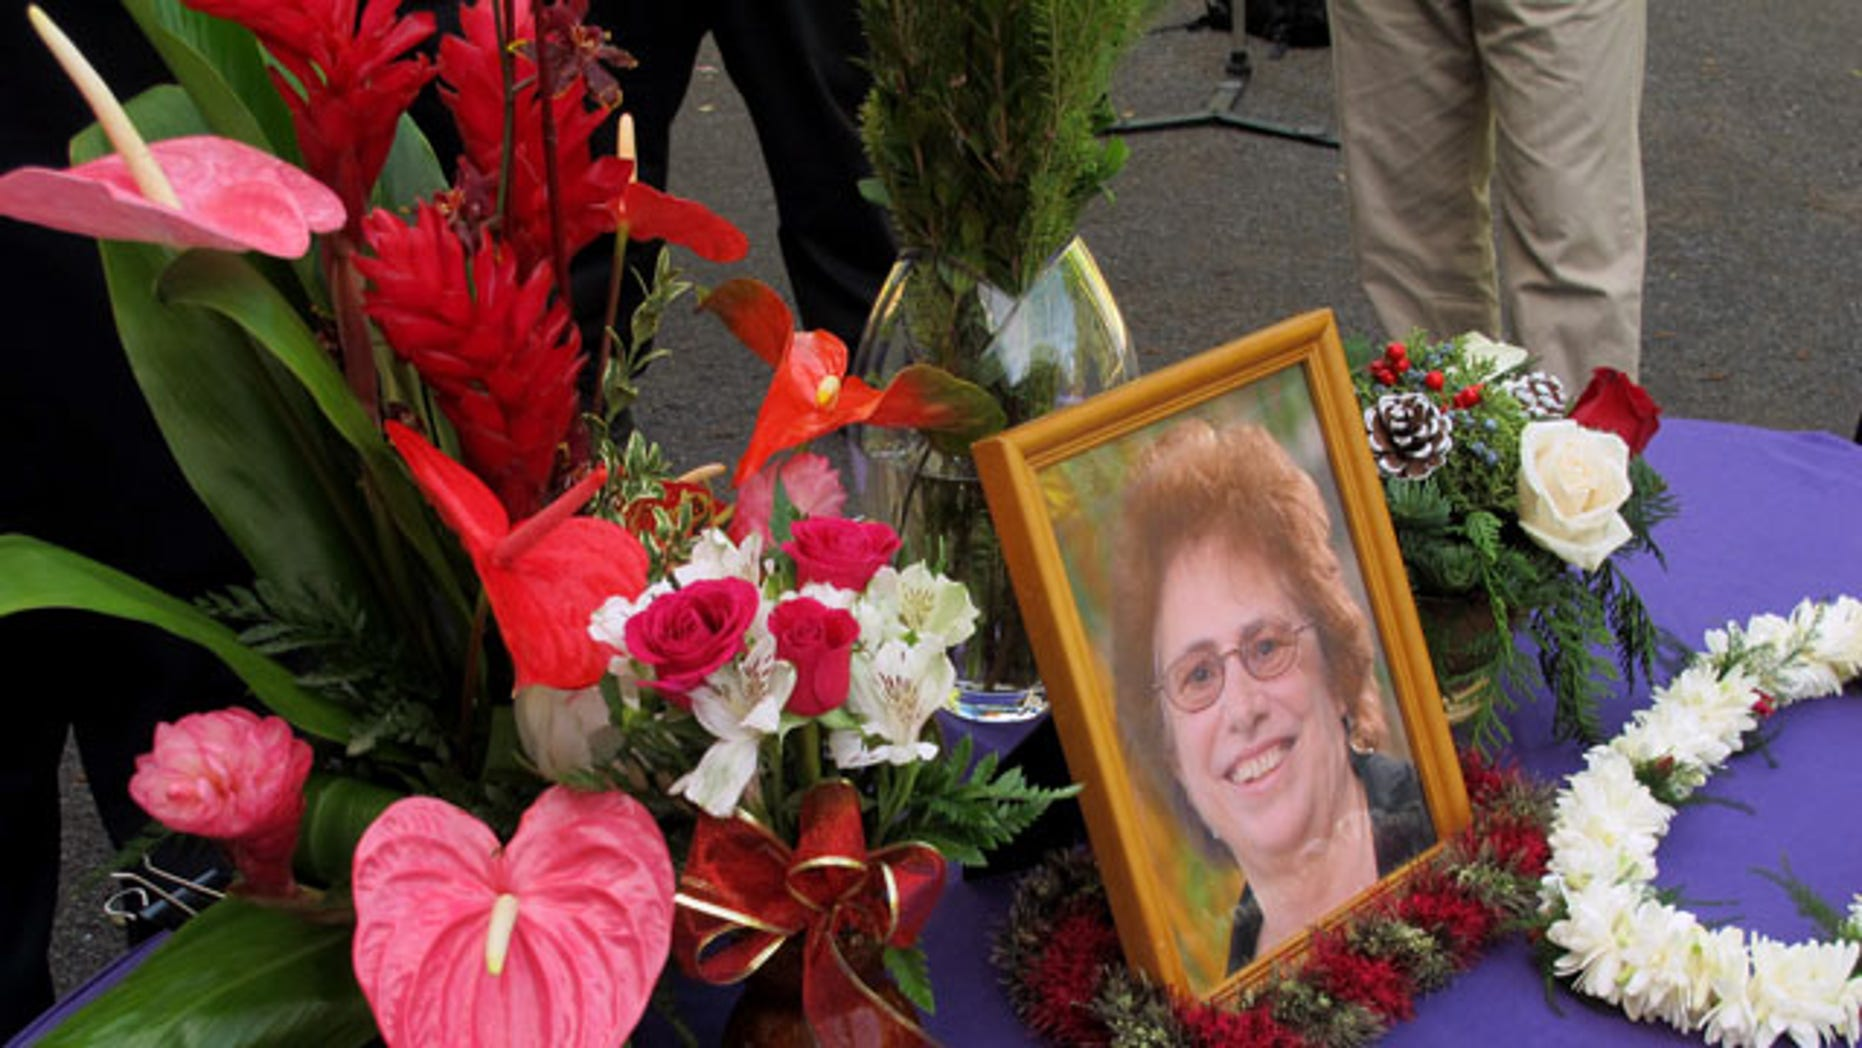 FILE - In this Dec. 12, 2013 file photo, a memorial for Loretta Fuddy, the director of the state Department of Health, is displayed outside the department in Honolulu. (AP)